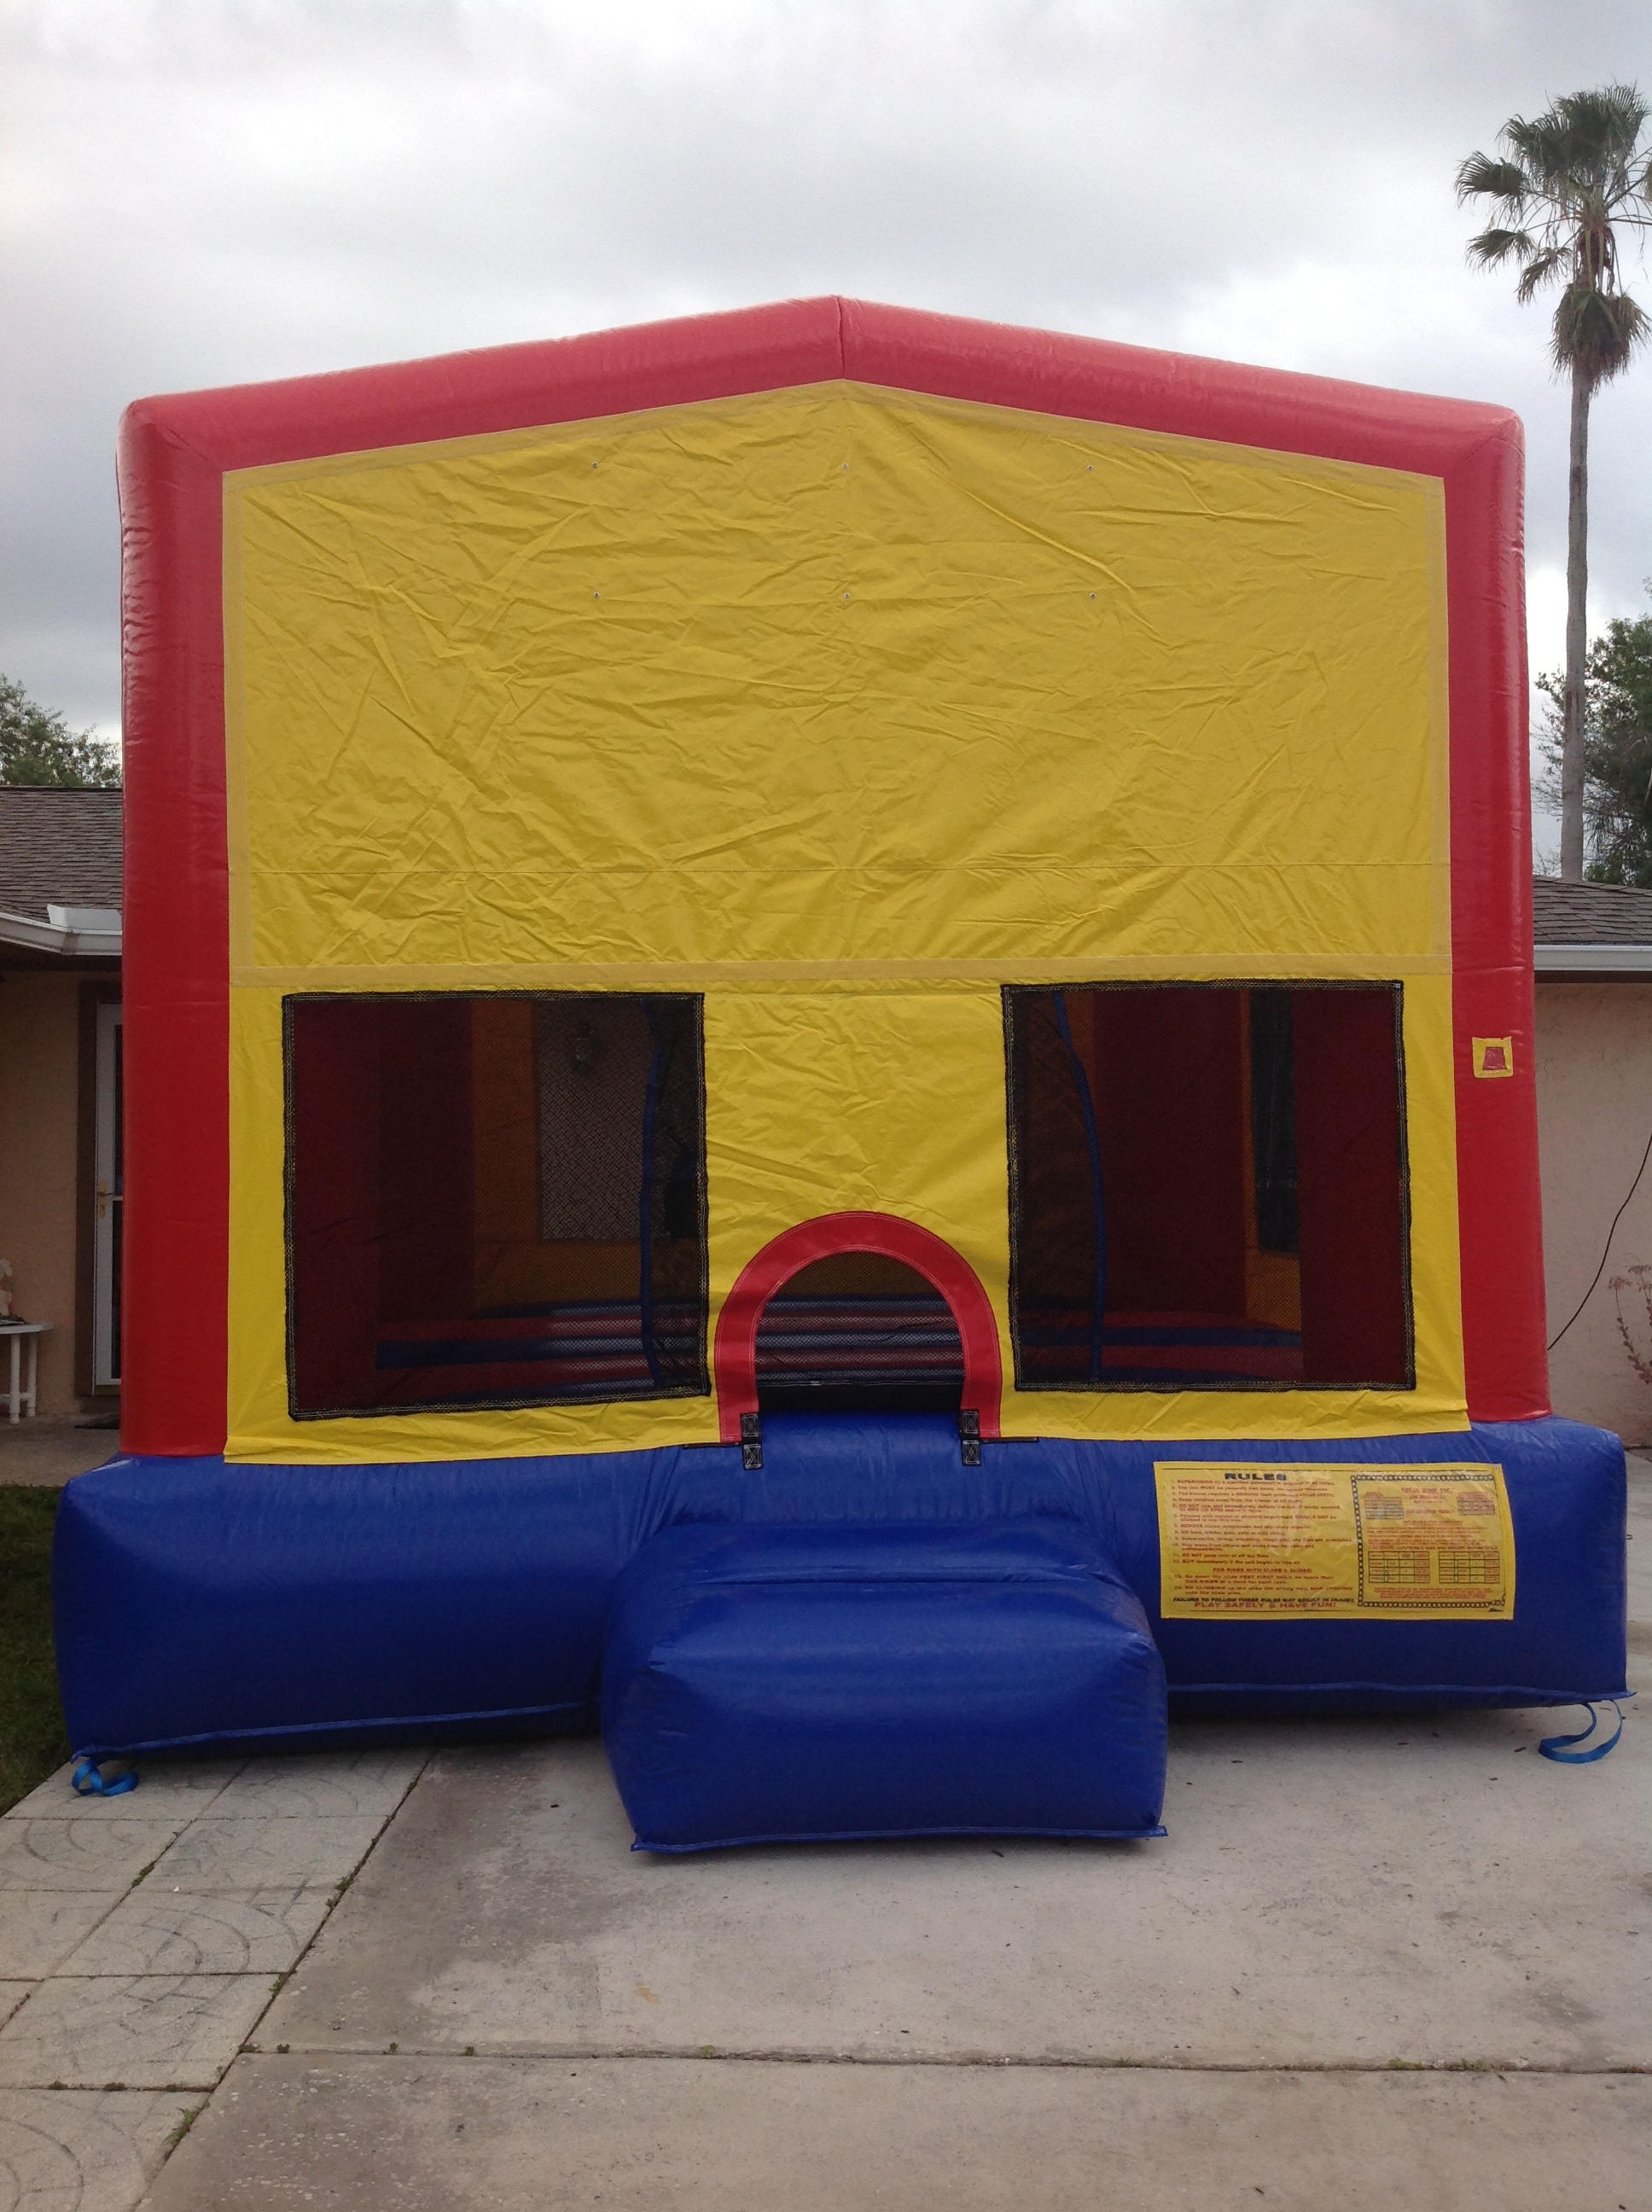 Awesome Bounce Houses Inflatable Slides Rental Kissimmee Orlando Download Free Architecture Designs Scobabritishbridgeorg